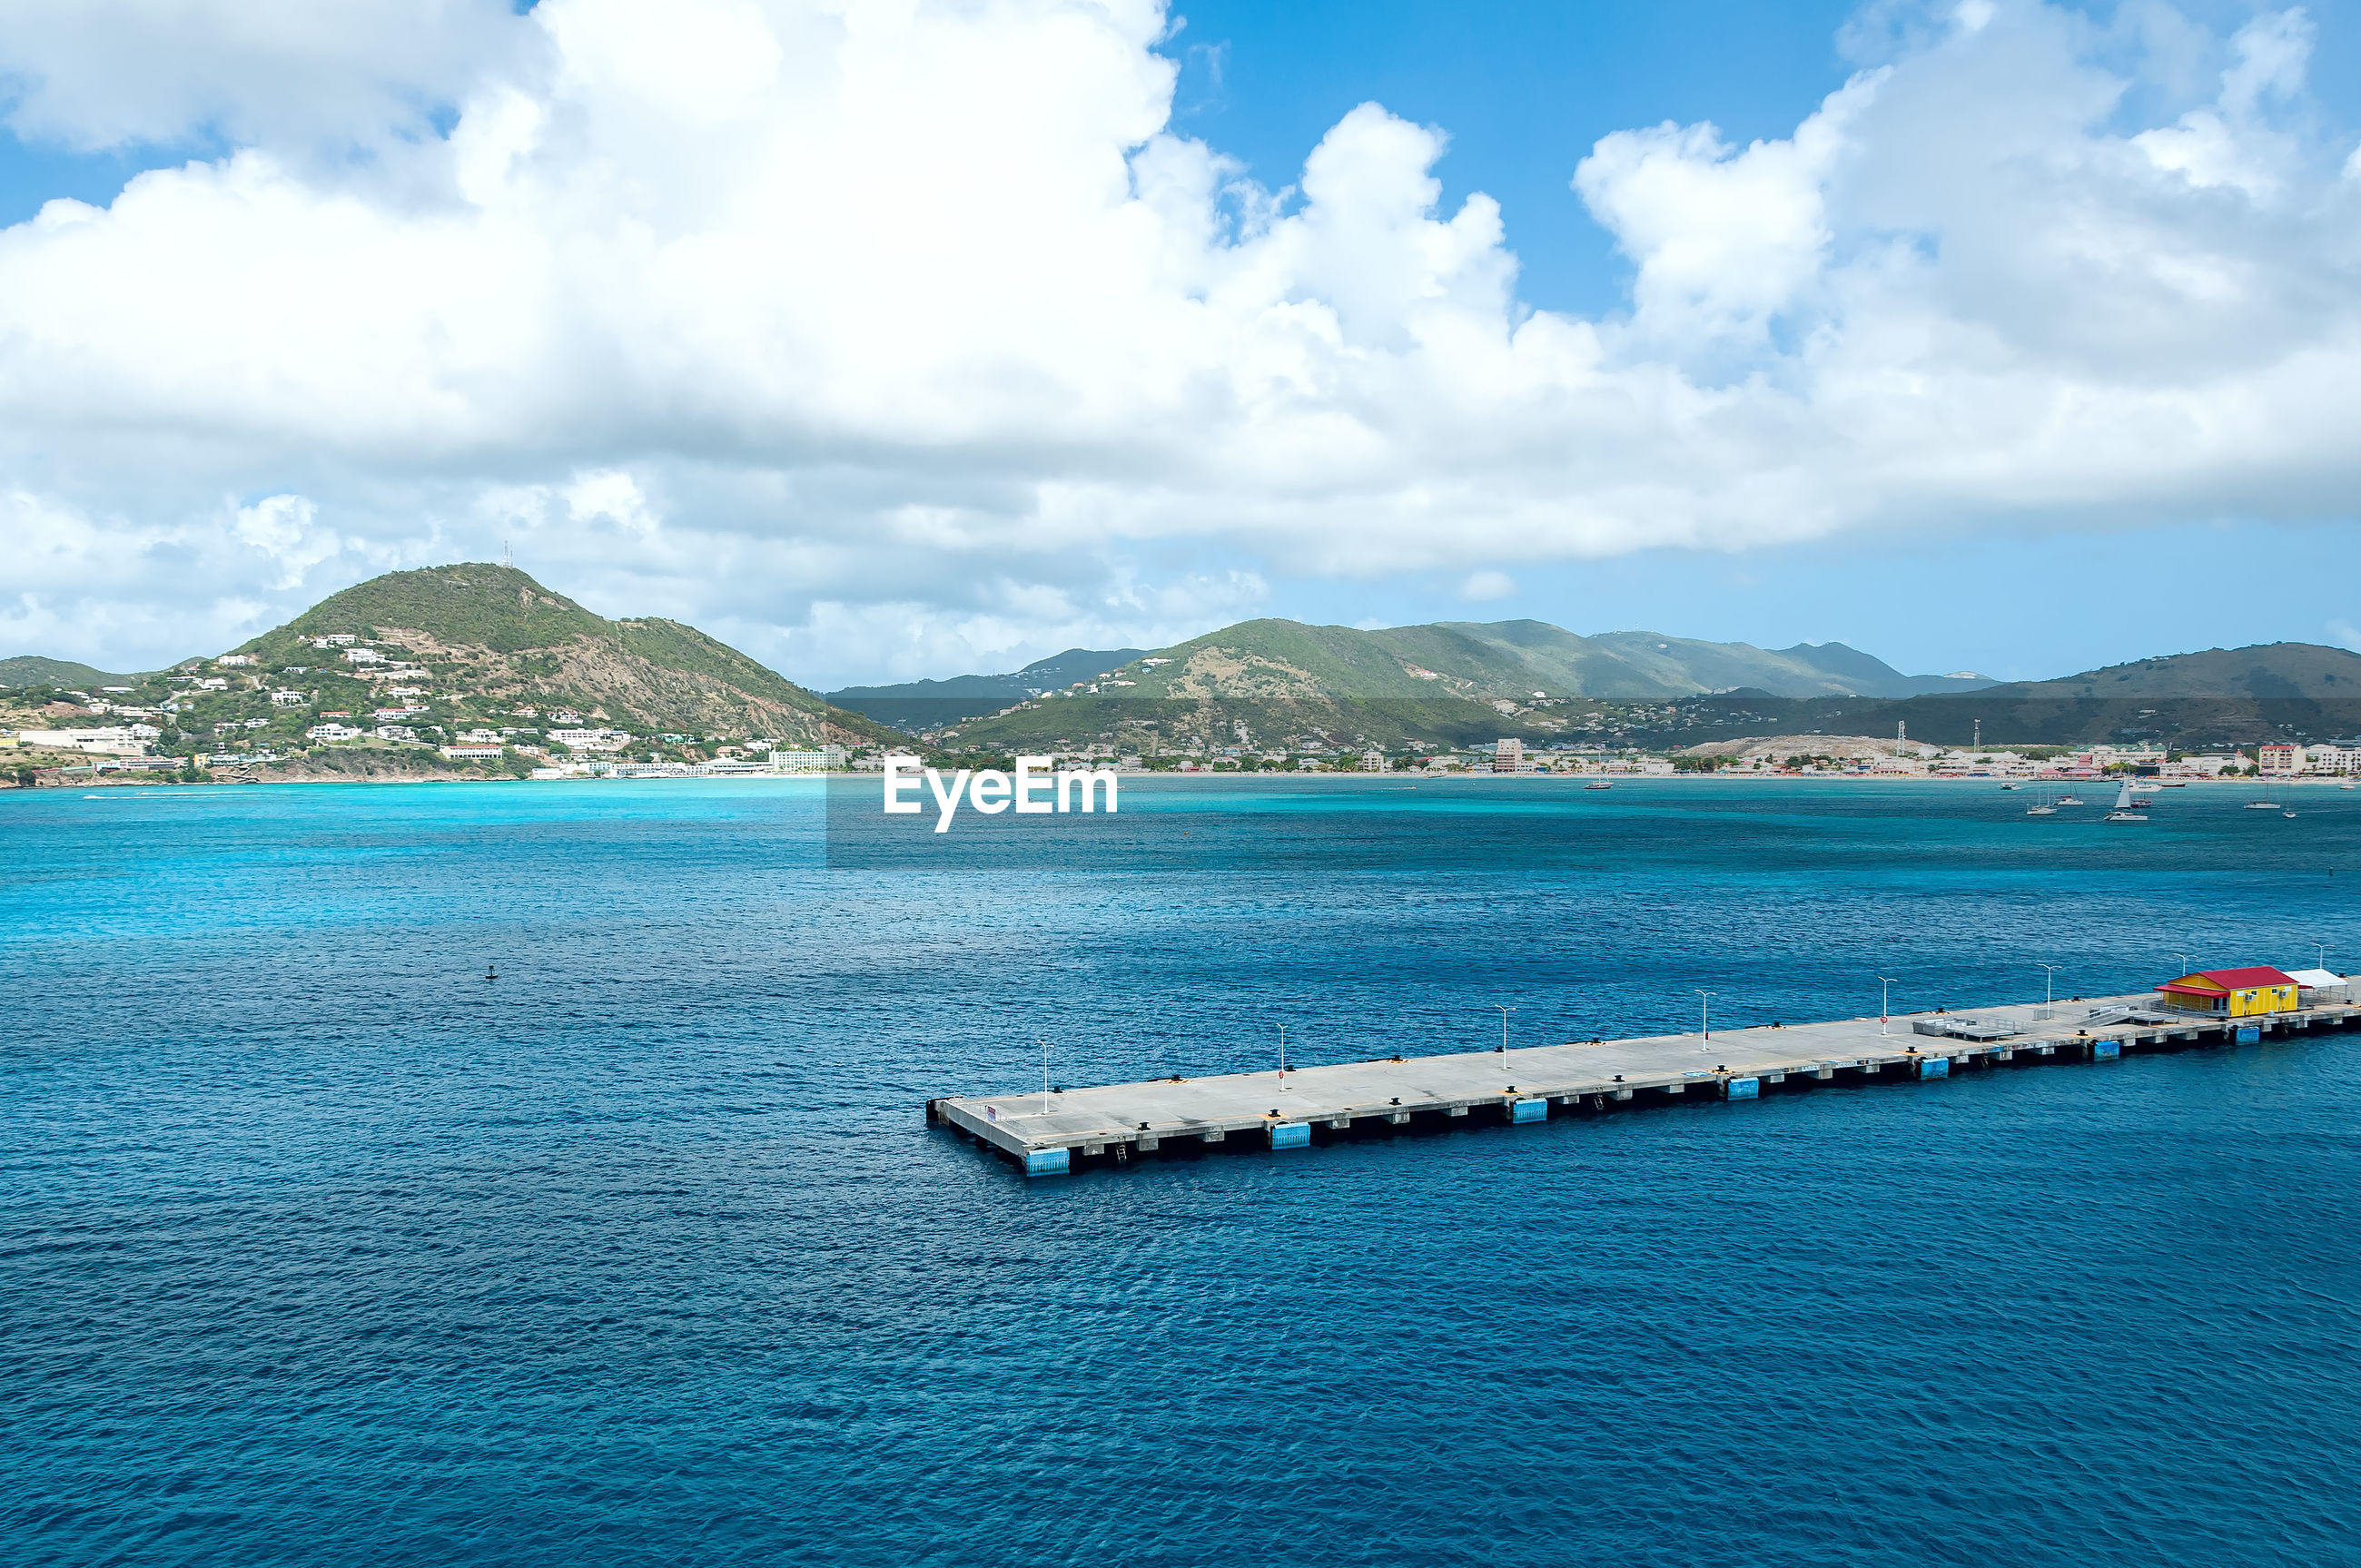 SCENIC VIEW OF BAY AGAINST SKY